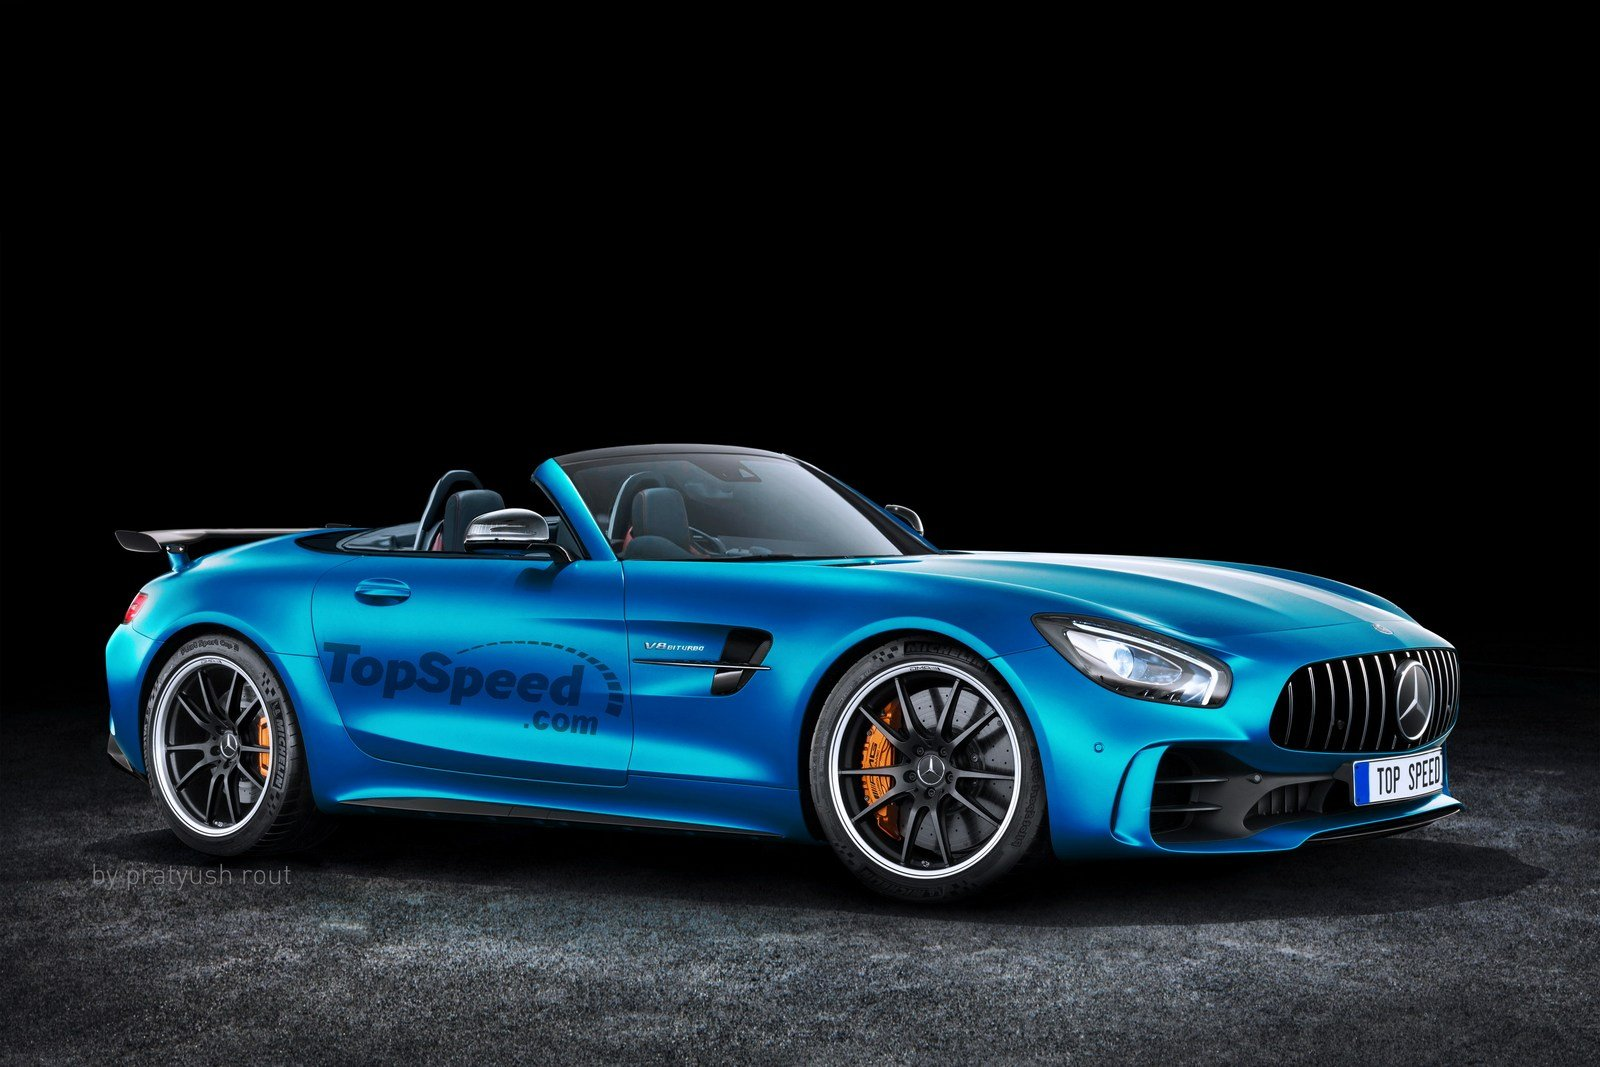 2019 mercedes amg gt r roadster picture 697450 car. Black Bedroom Furniture Sets. Home Design Ideas